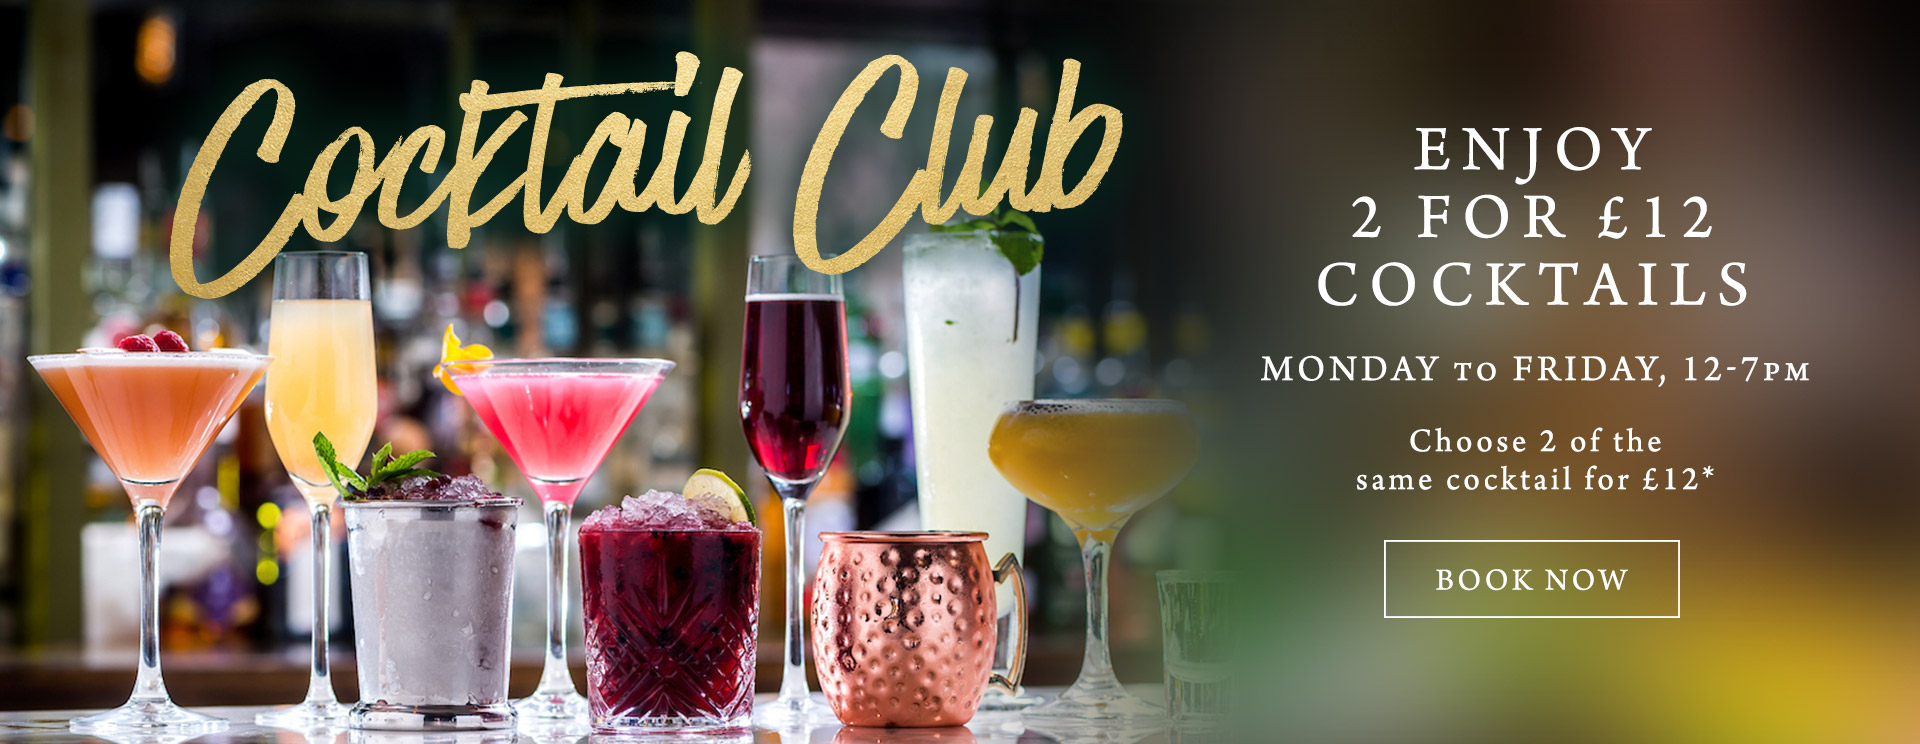 2 for £12 cocktails at The Caversham Rose